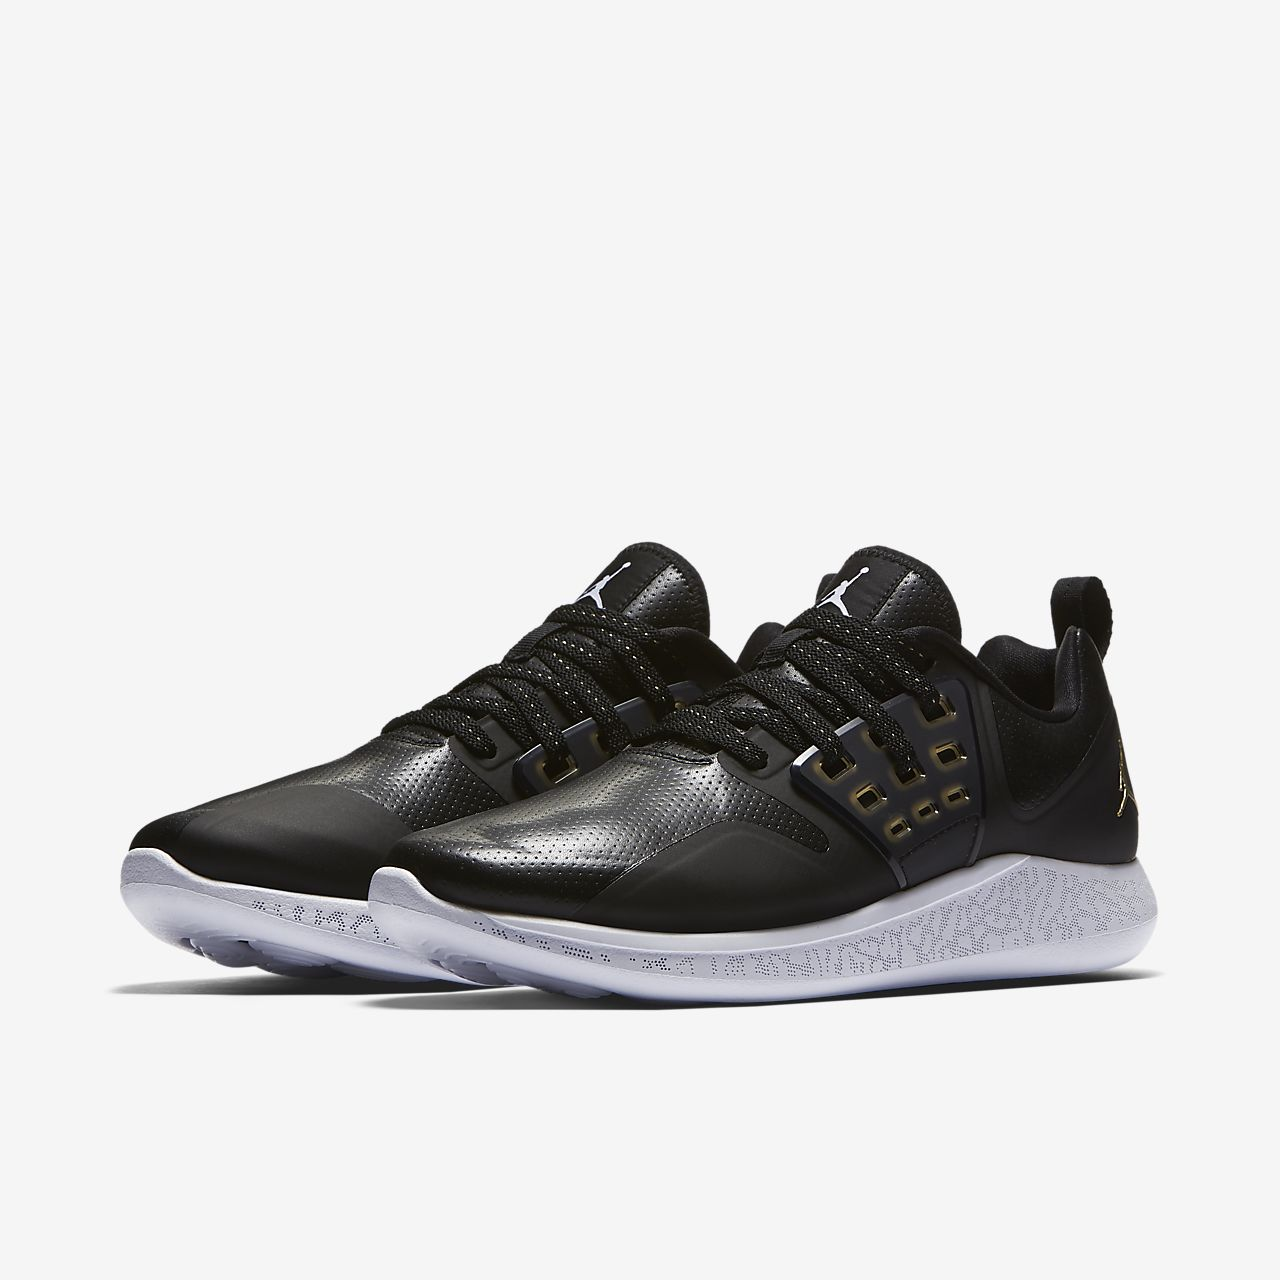 jordan running shoes men 8.5 nz